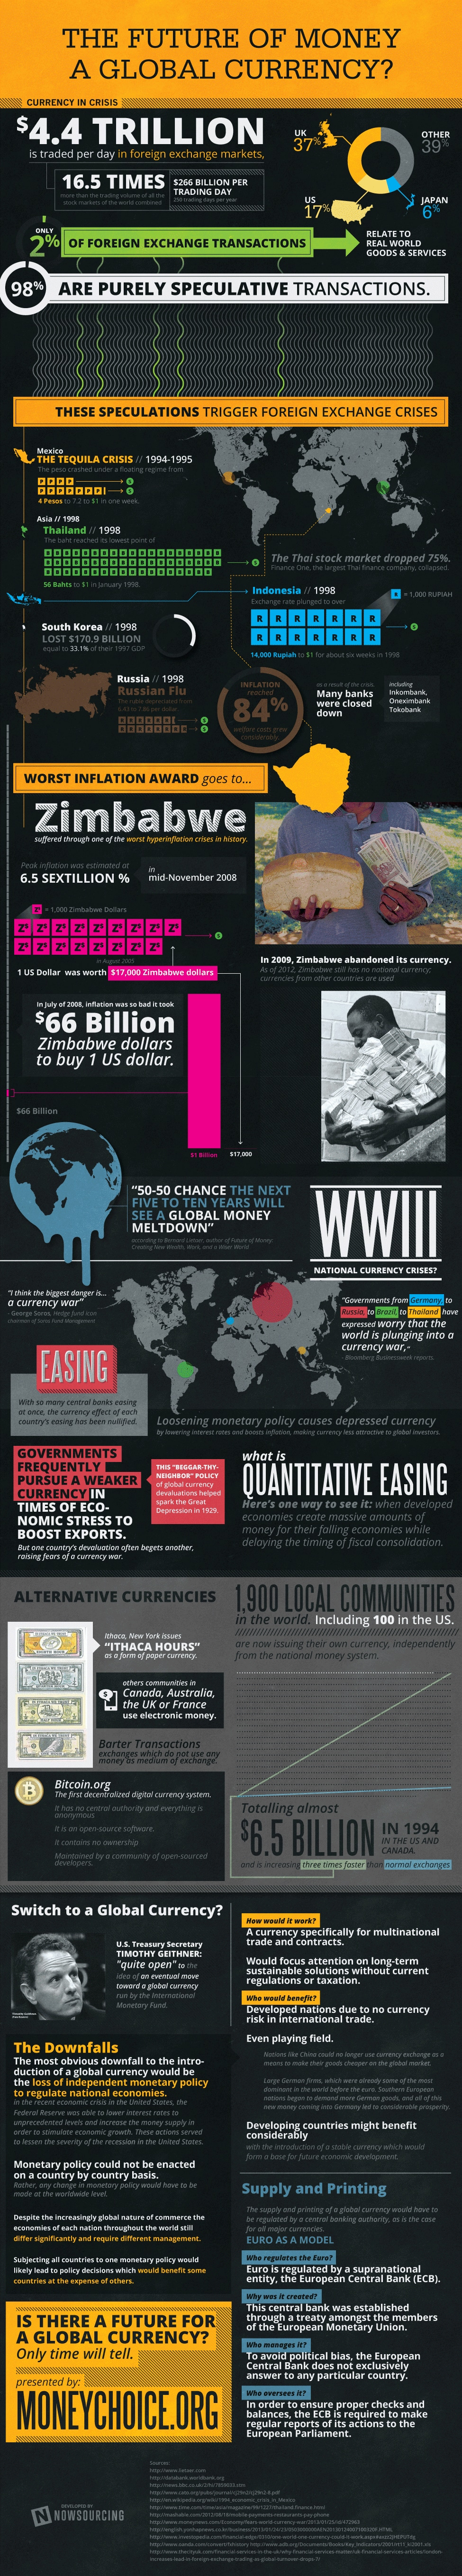 The Possibility Of Digital Global Currency In Our Future [Infographic]